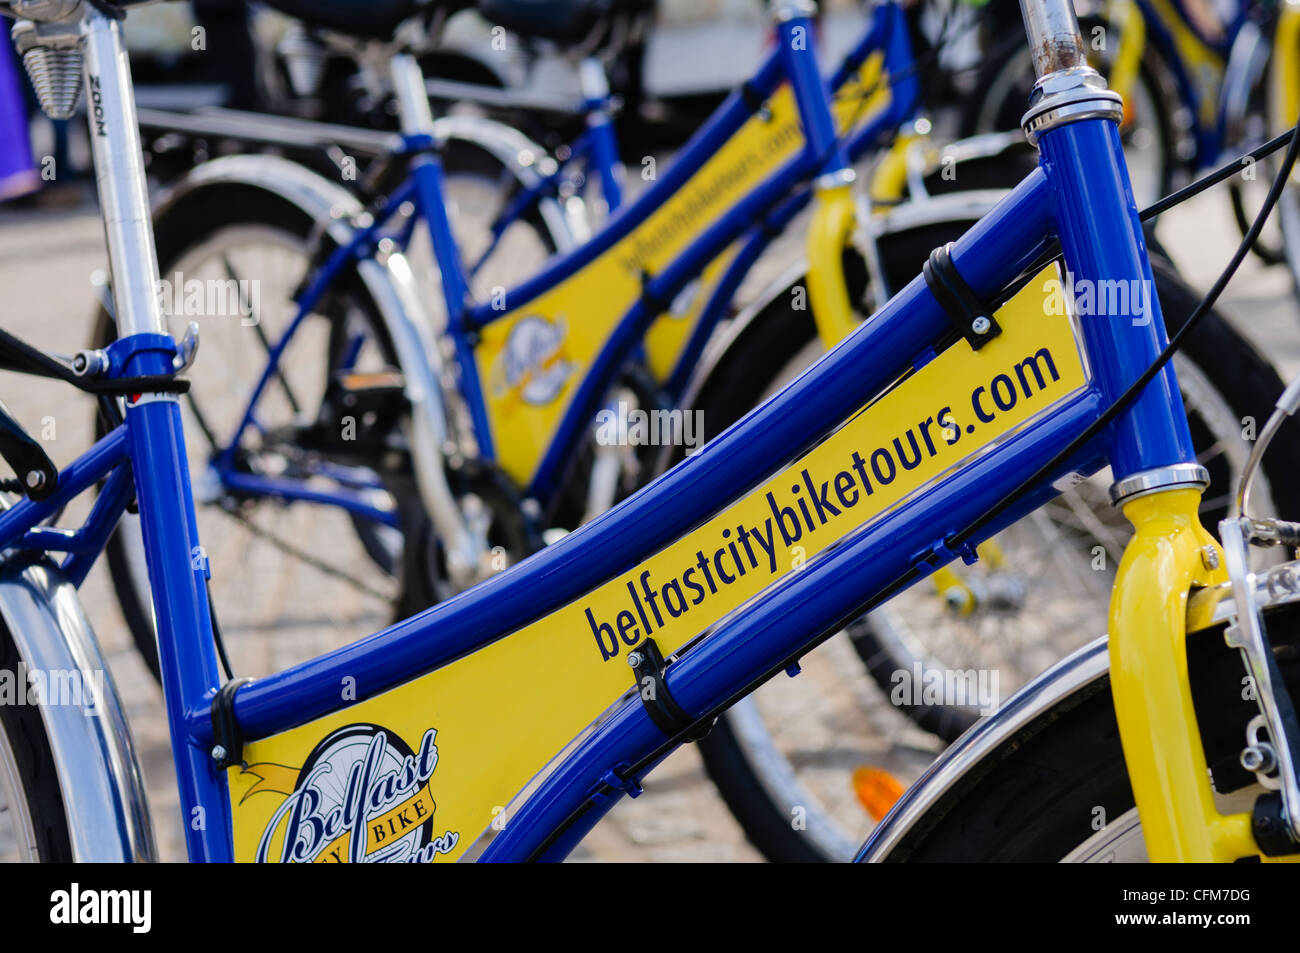 BelfastBikeTours.com bicycles. Bike tours for visitors and tourists. - Stock Image